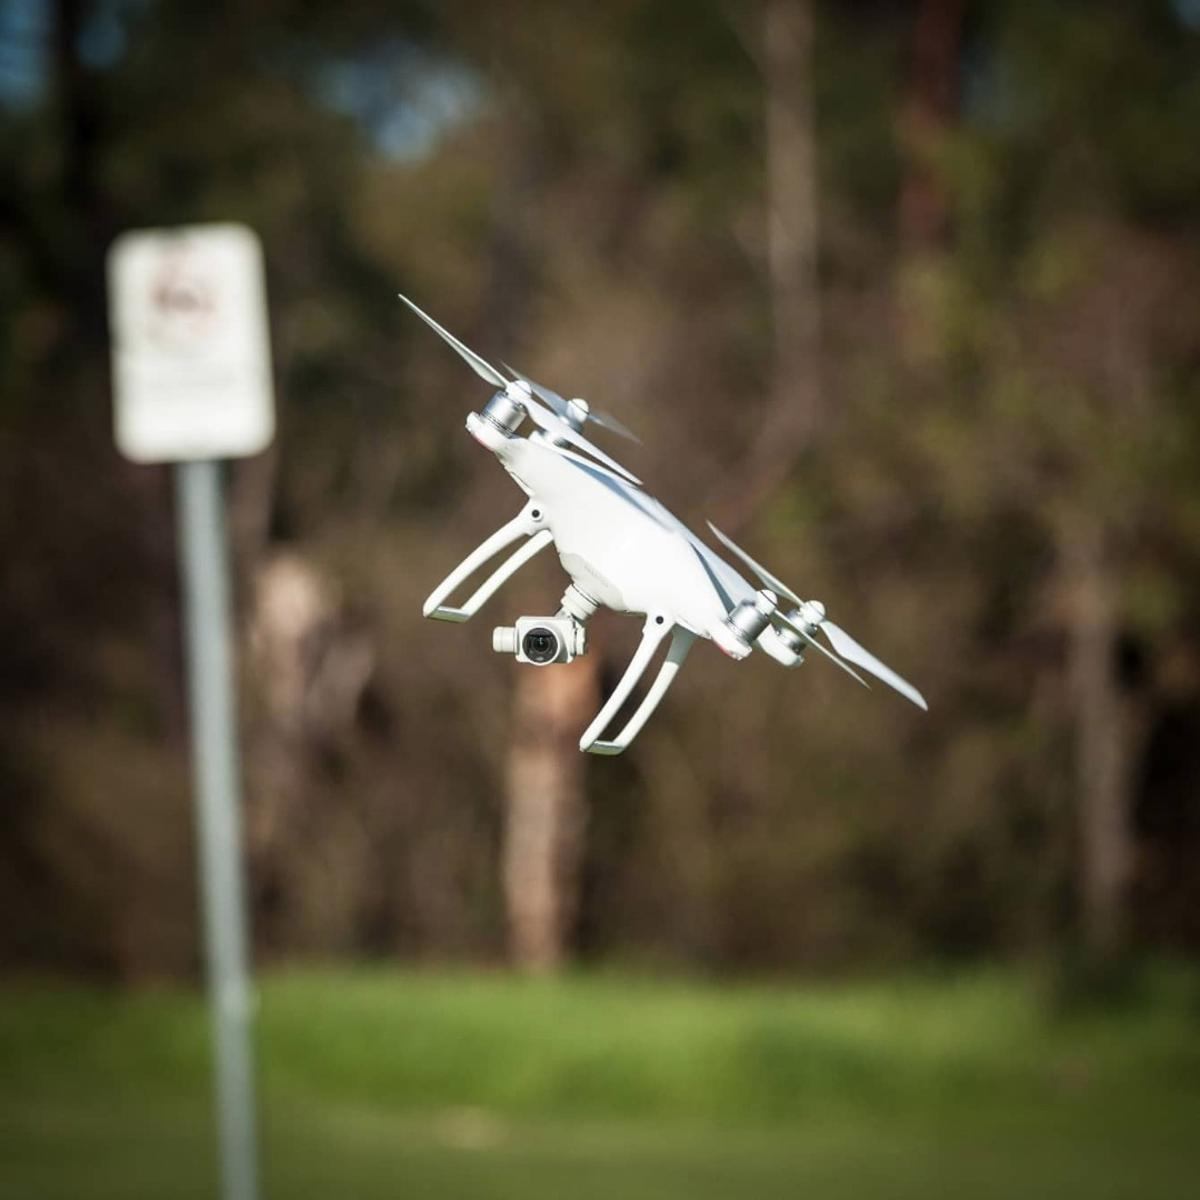 The team examined 150 reported civil incidents involving drones between 2006 and 2016